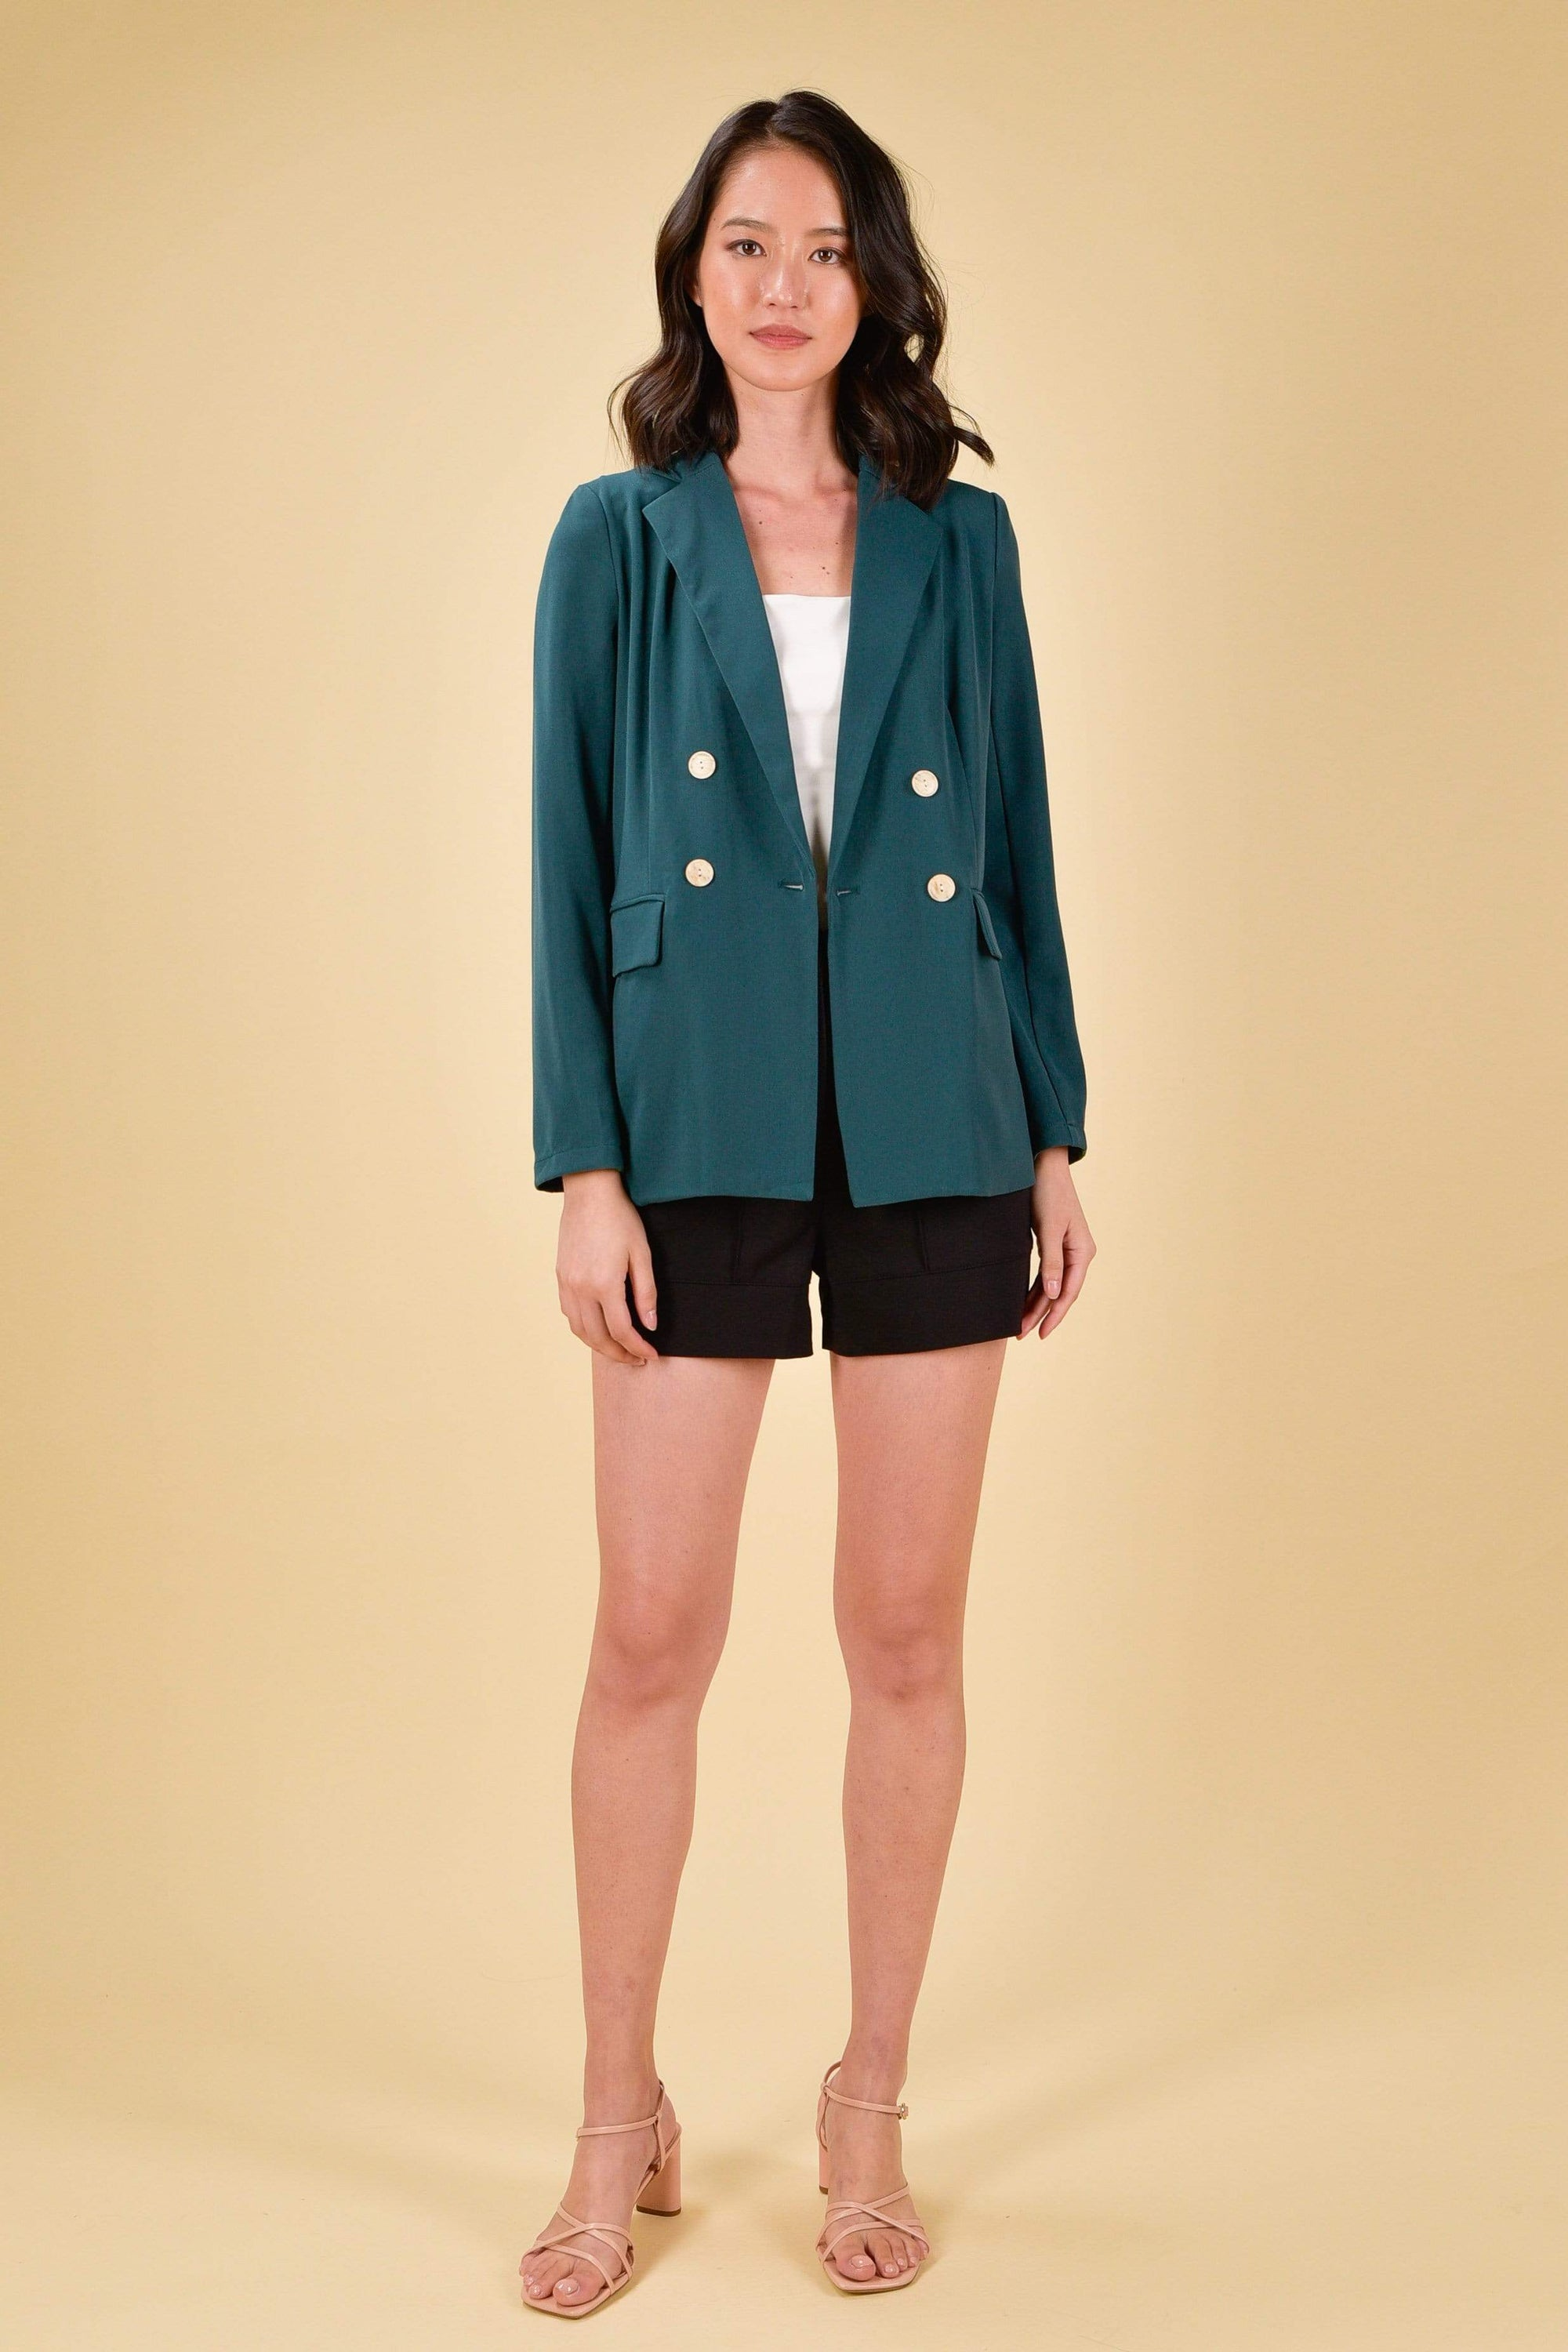 JOCINA DOUBLE-BREASTED BLAZER IN FOREST